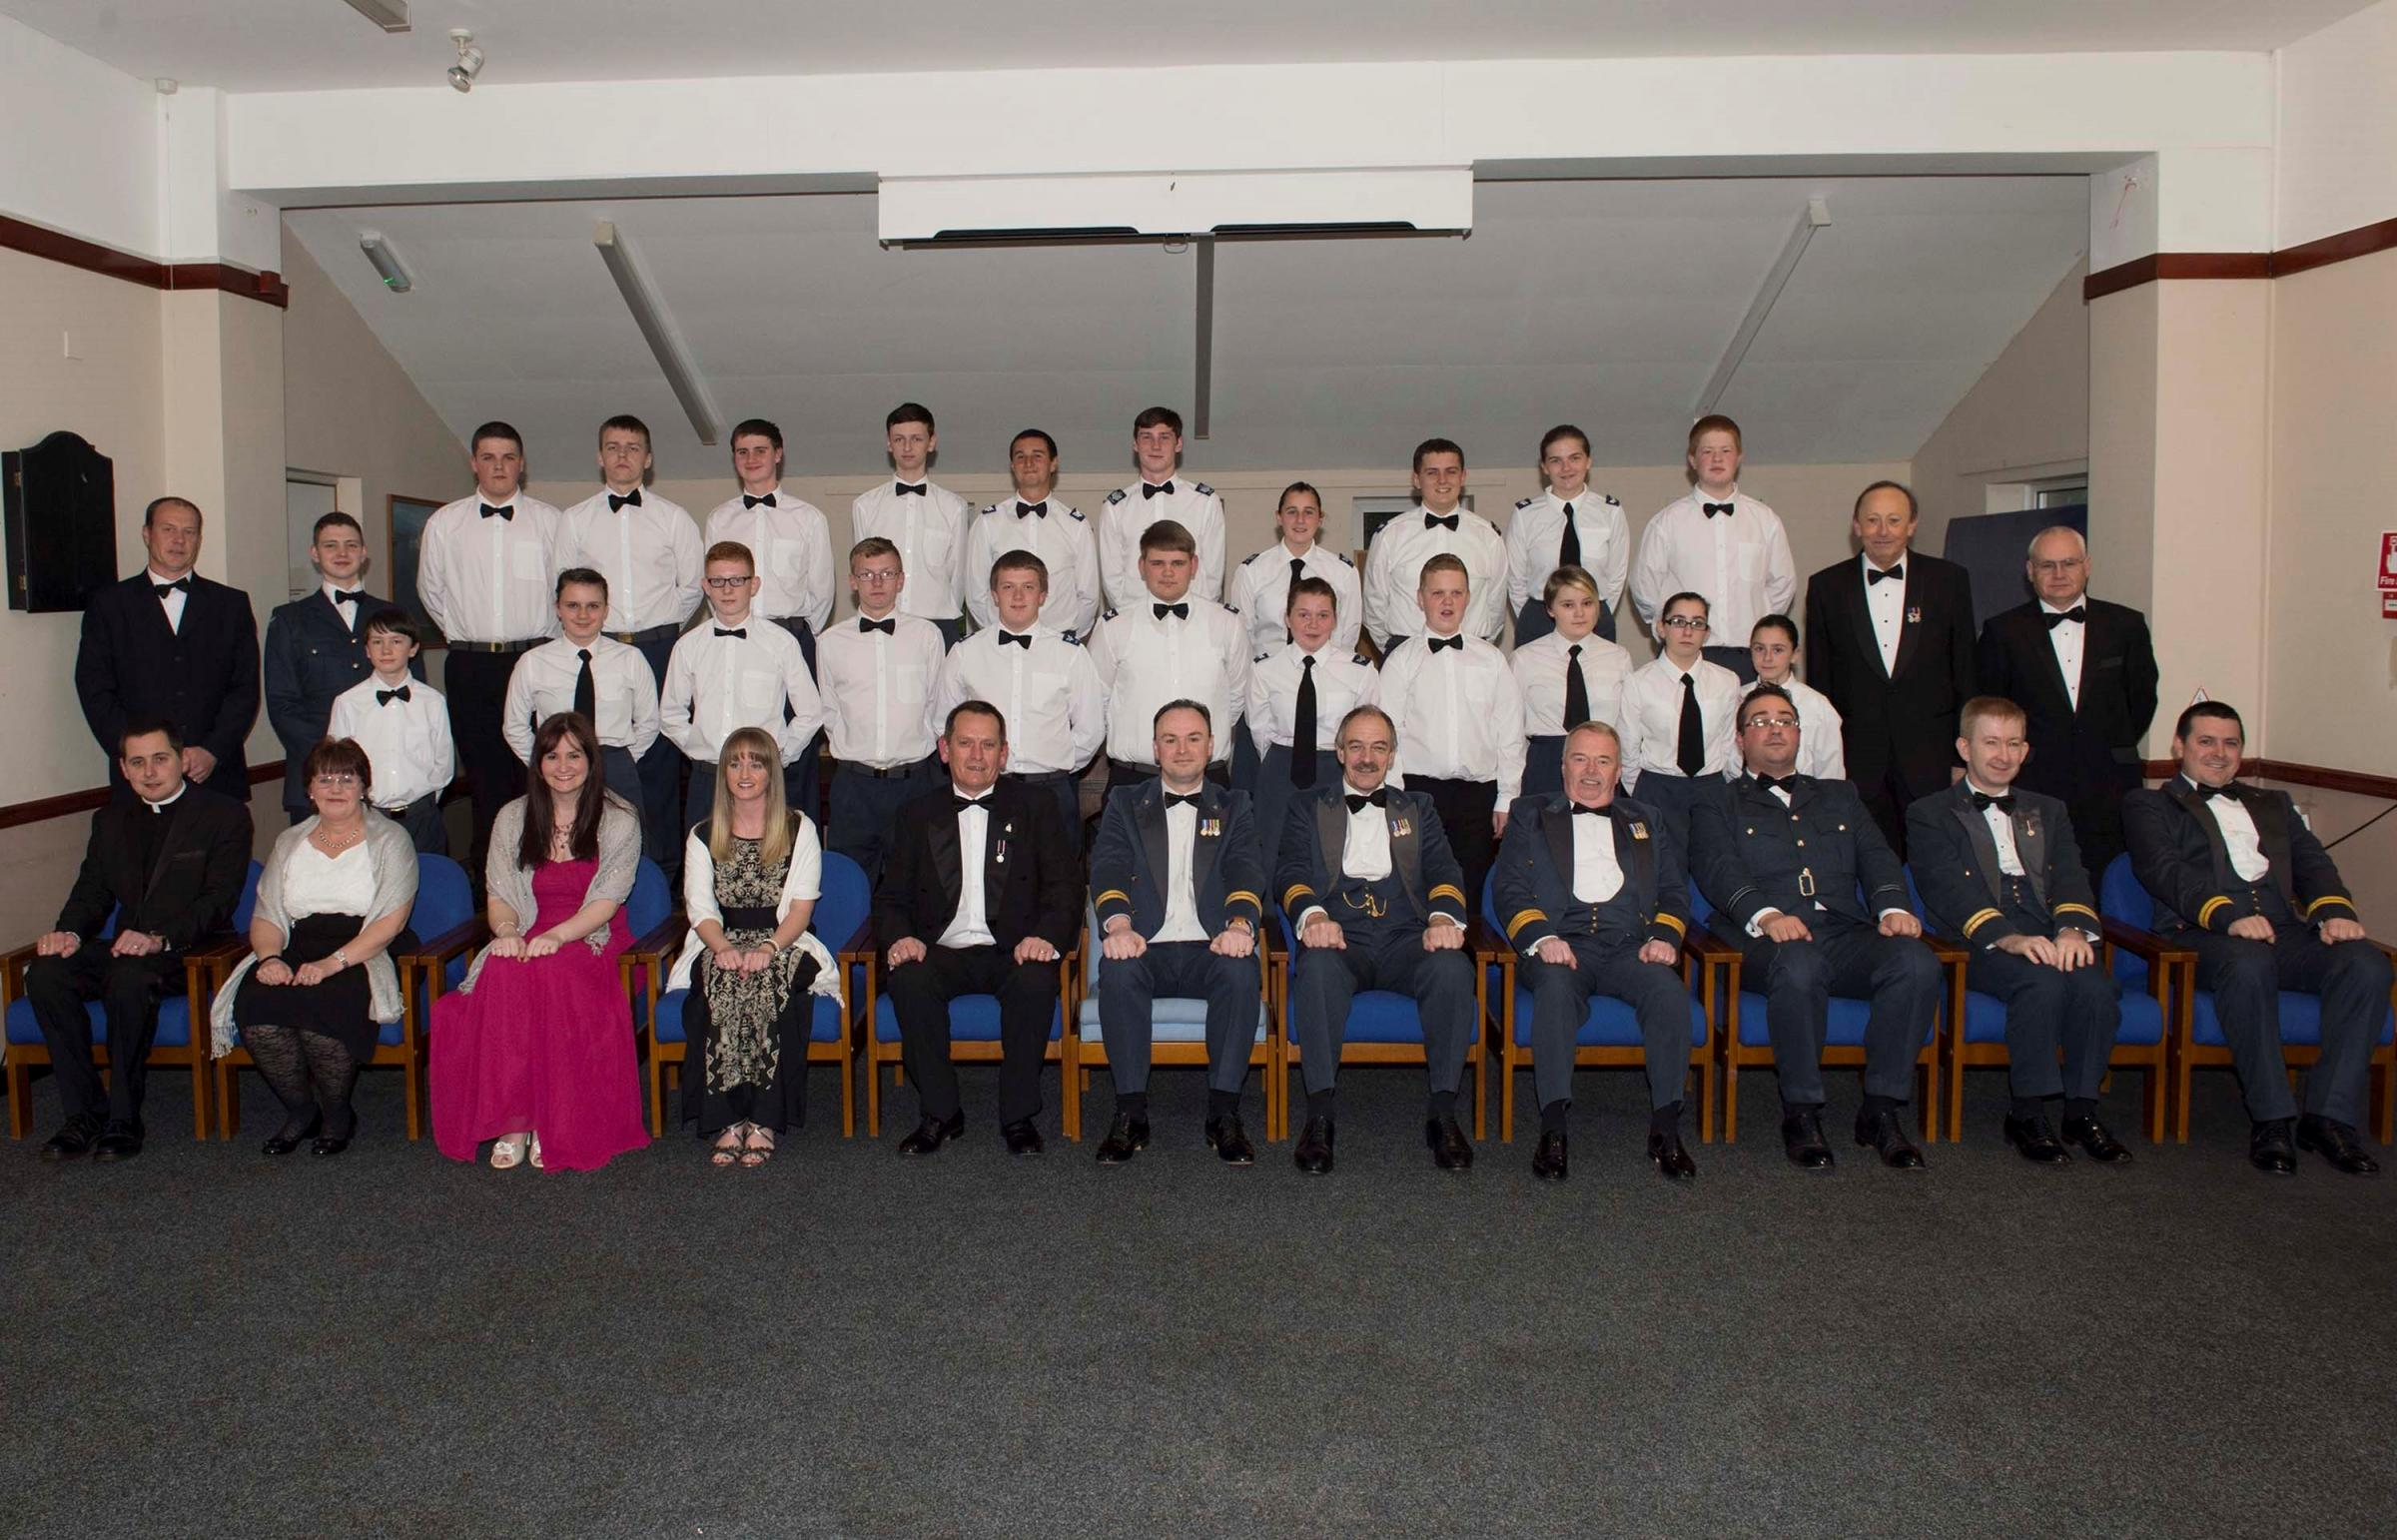 DINING IN NIGHT: Members of 372 (Barry) Squadron Air Training Corps and guests